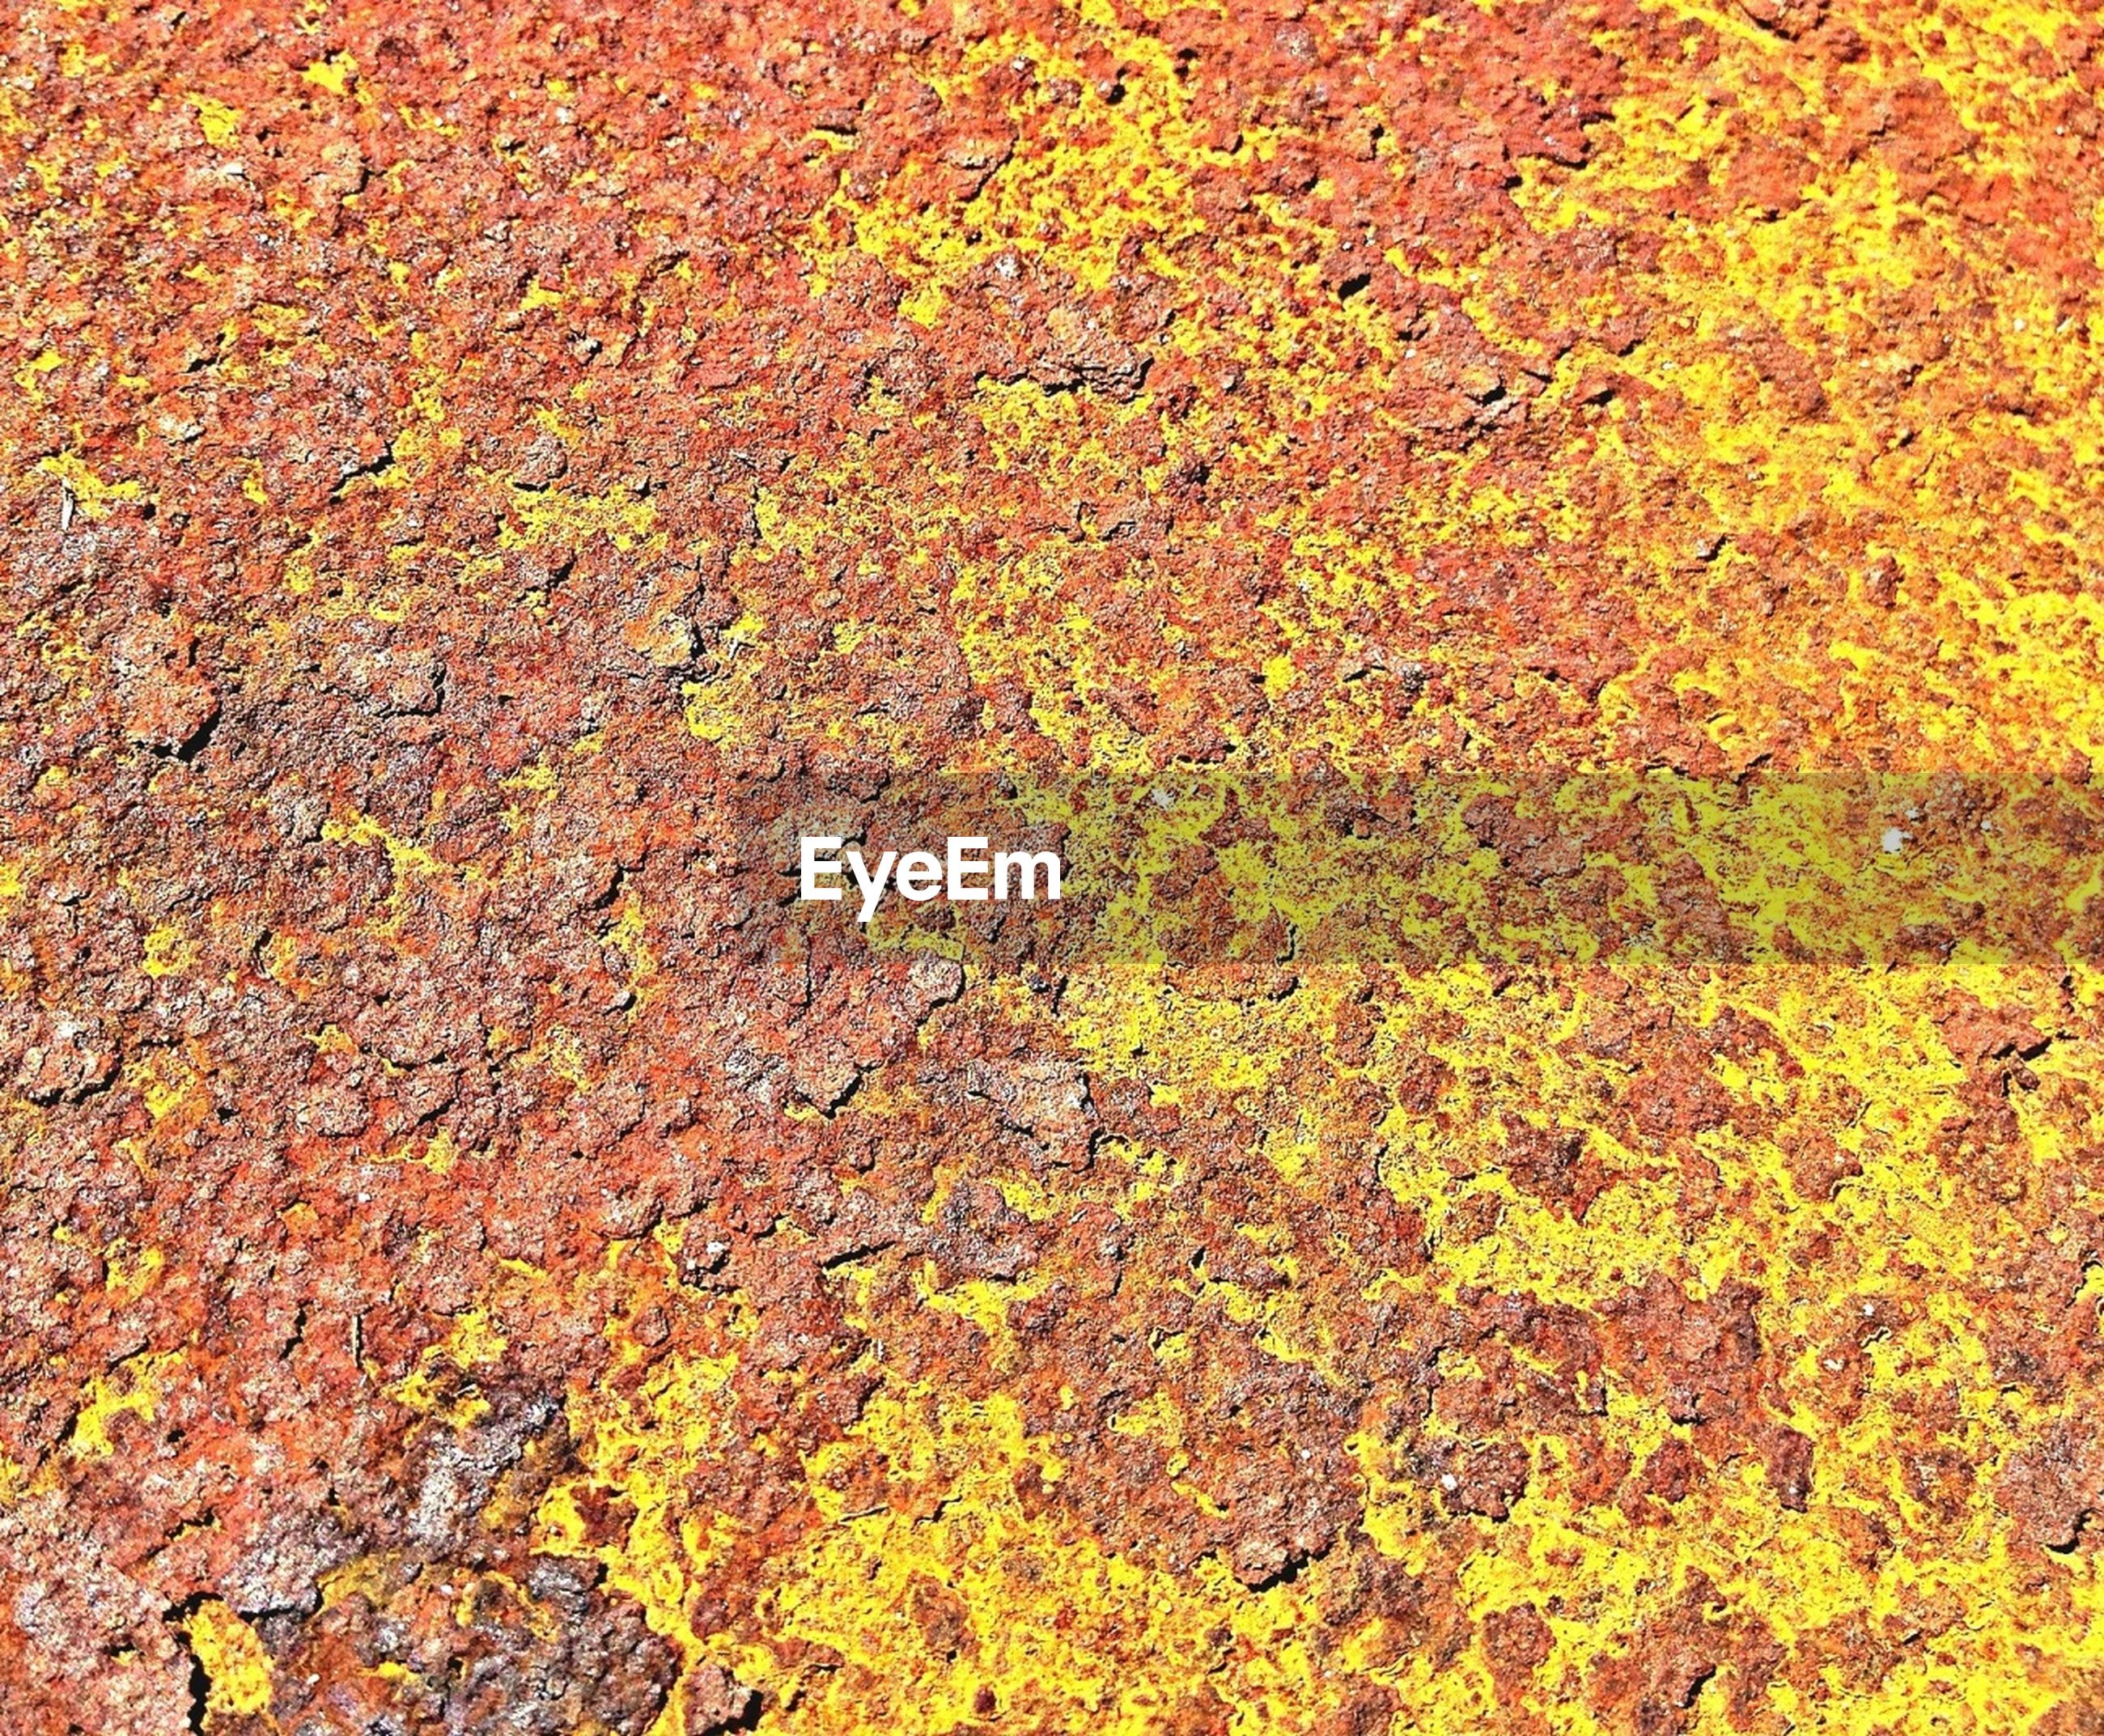 full frame, backgrounds, textured, autumn, change, yellow, orange color, day, no people, nature, outdoors, close-up, growth, leaf, red, pattern, season, wall - building feature, high angle view, detail